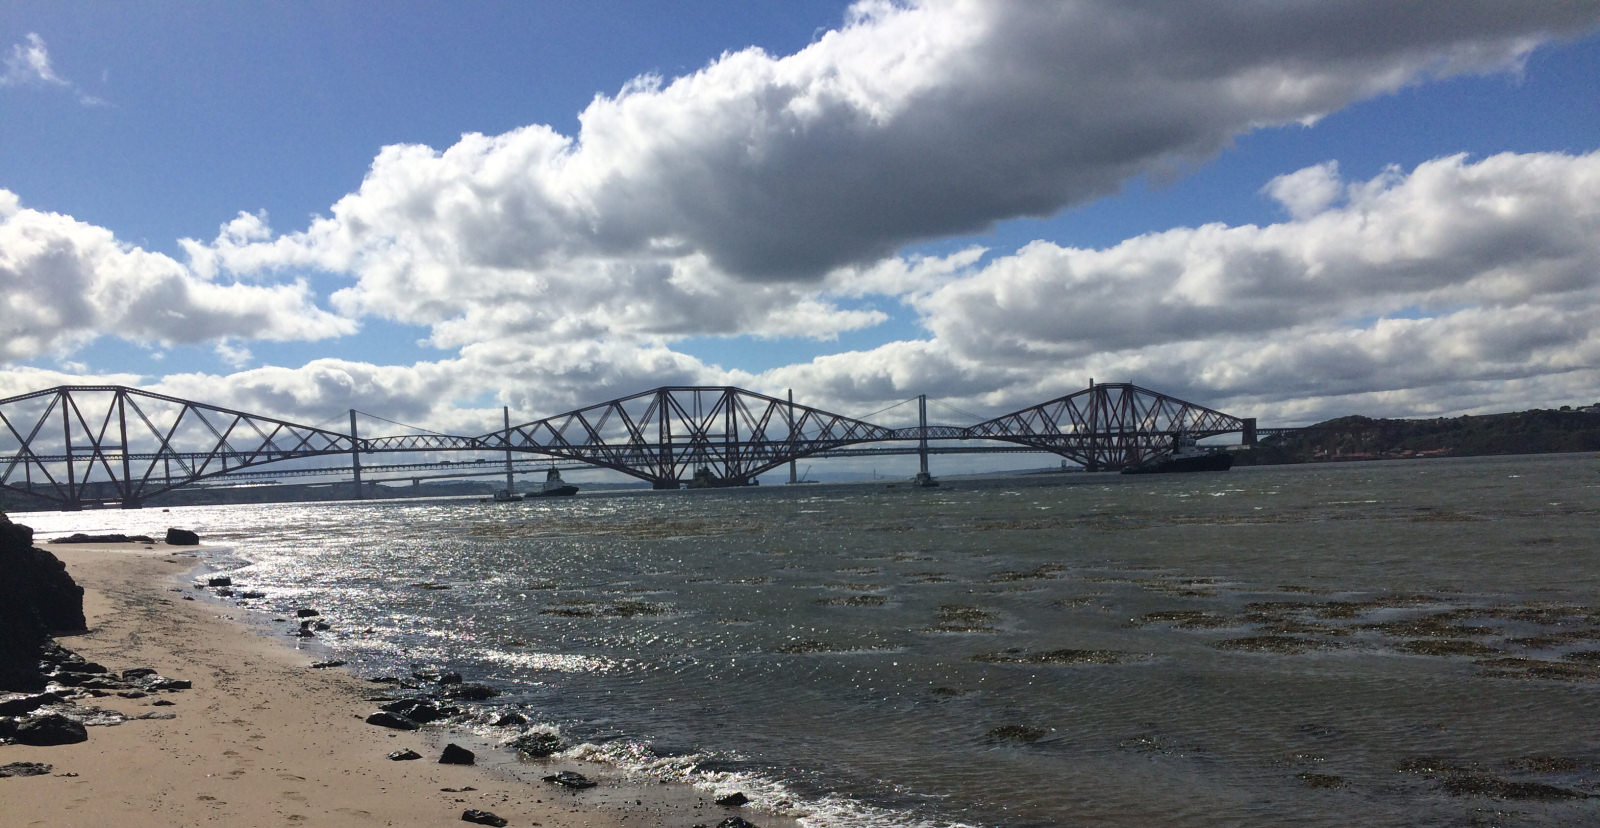 Bring Mindfulness to the Kingdom of Fife